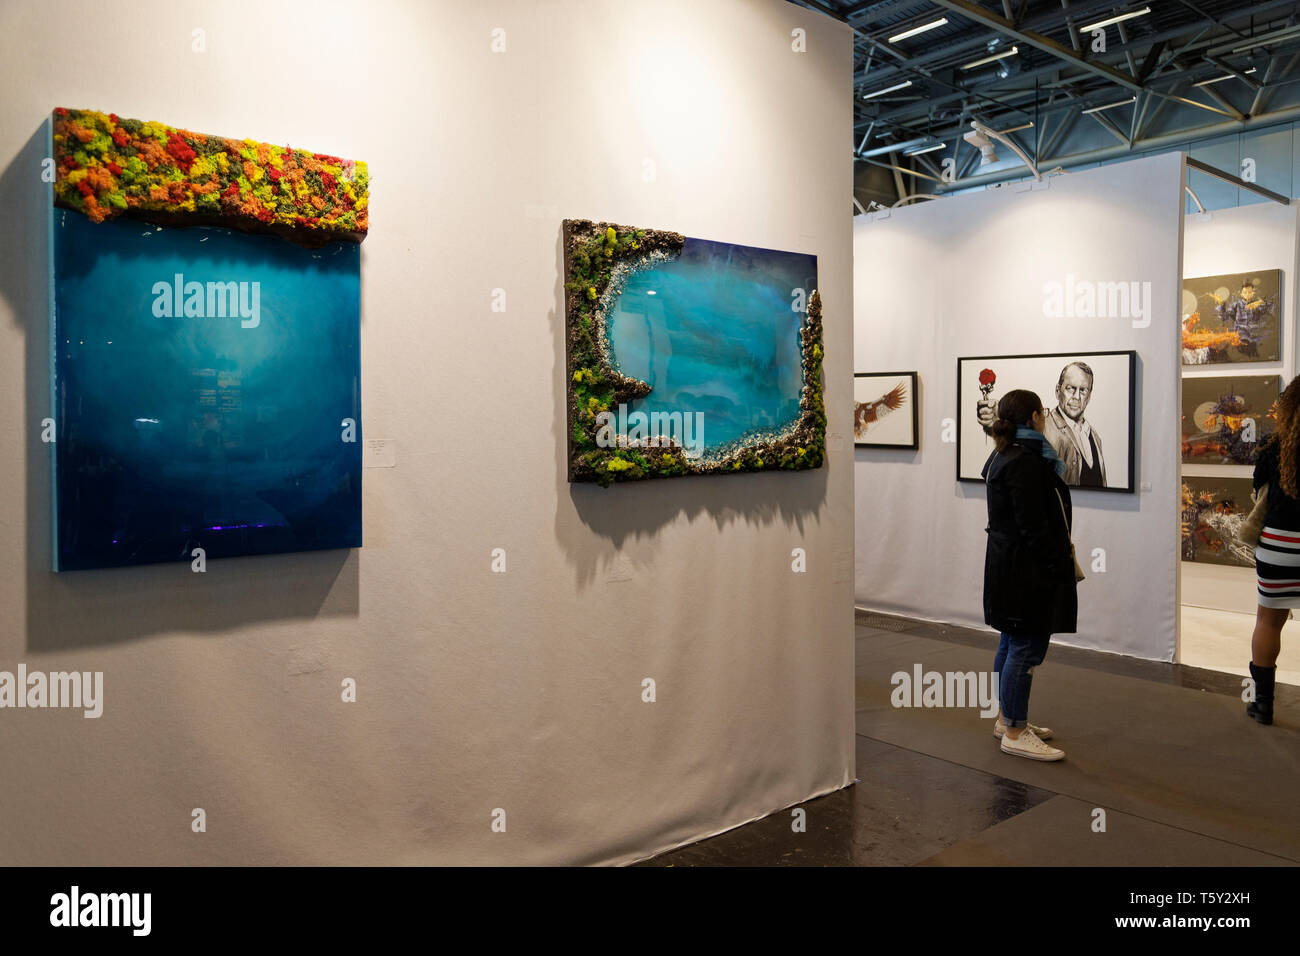 Contemporary Art Fair, International Exhibition of Contemporary Art from April 11 to 14, 2019, Paris, France.Credit: Veronique Phitoussi / Alamy Stock - Stock Image